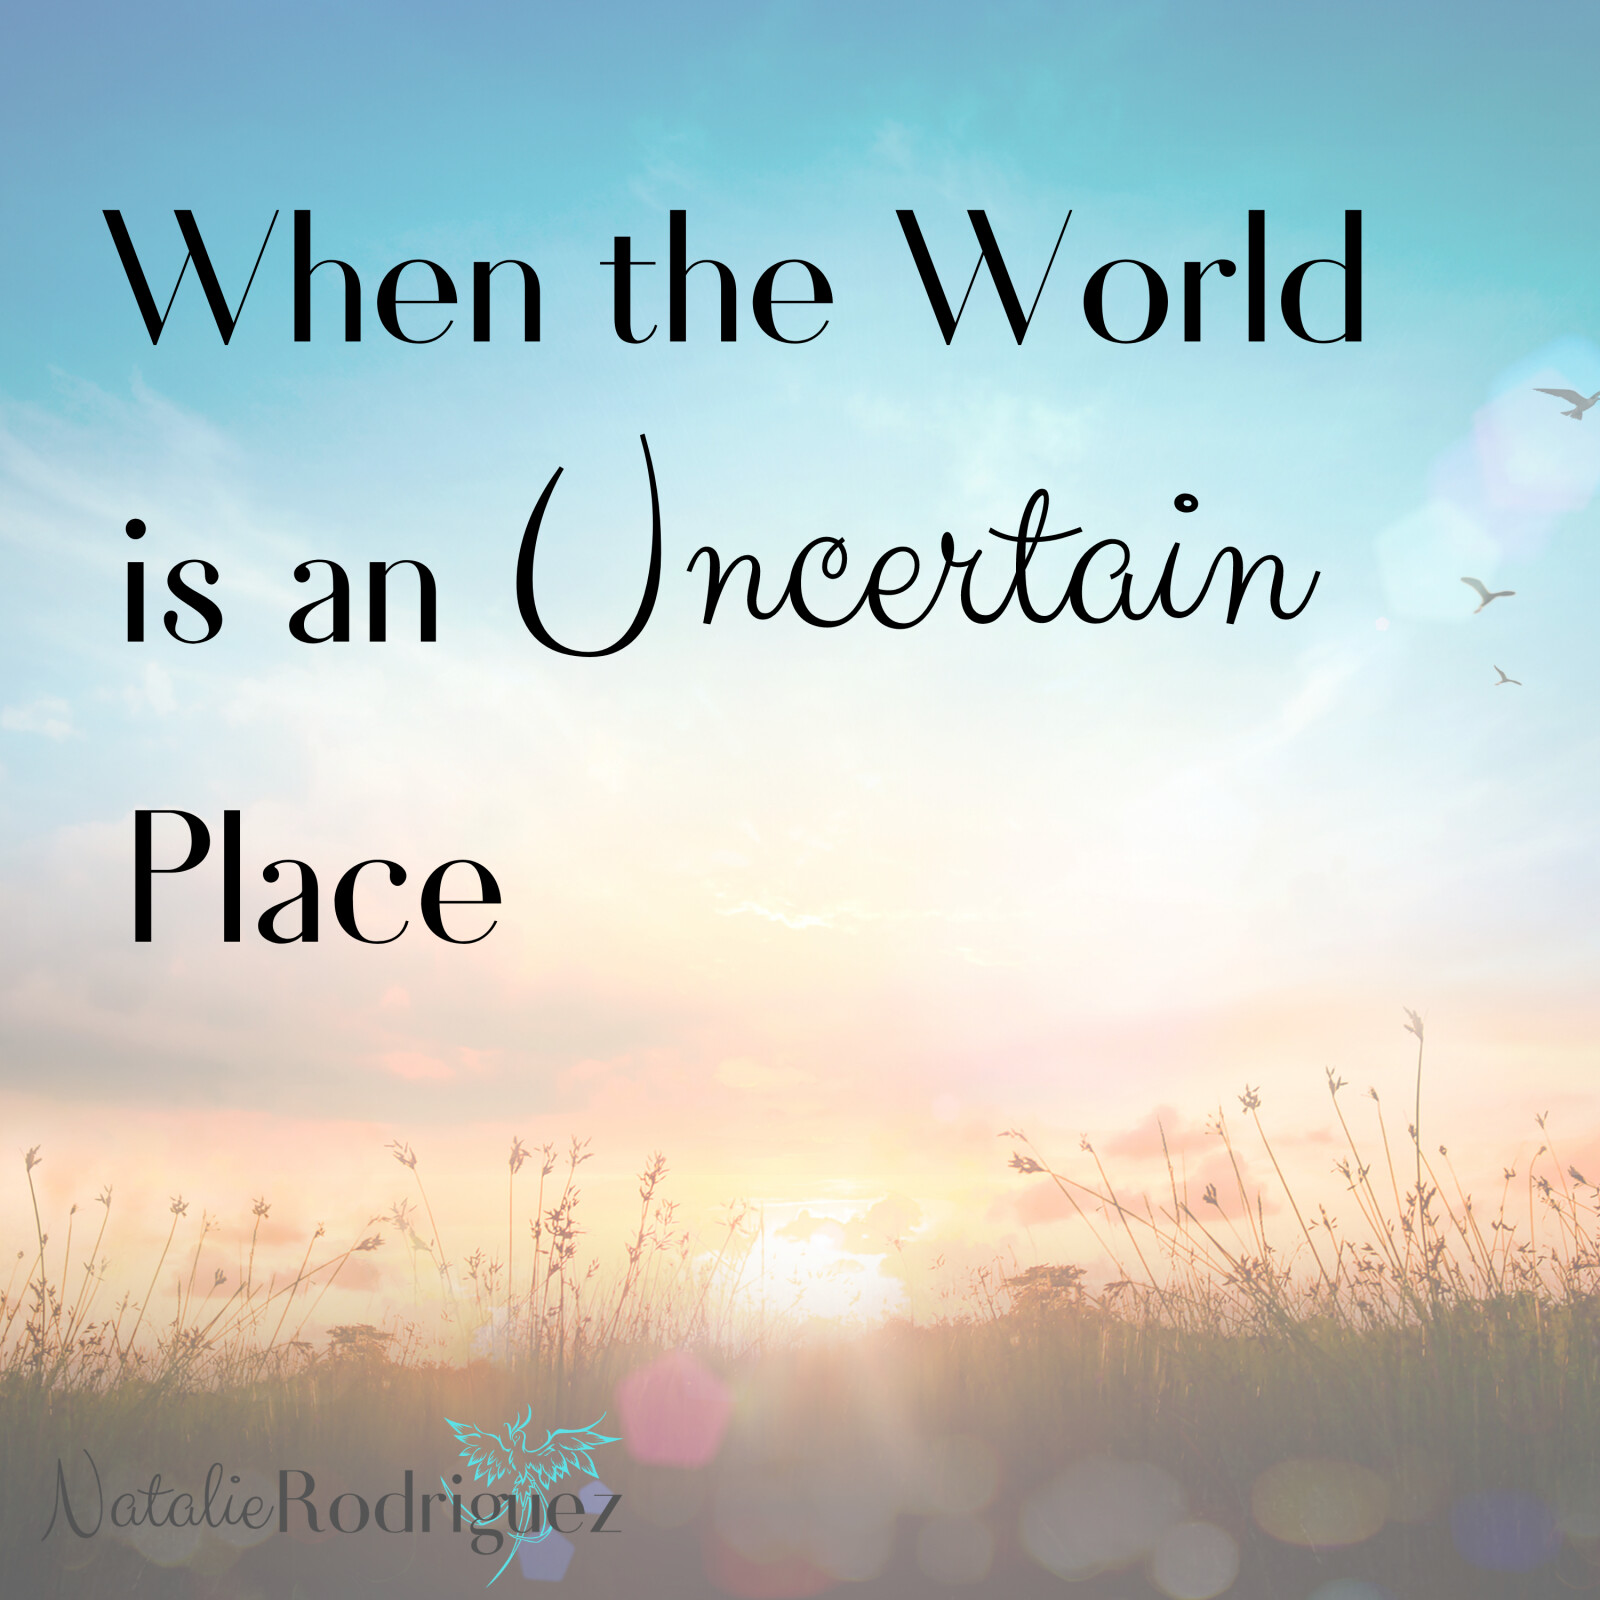 When the World is an Uncertain Place